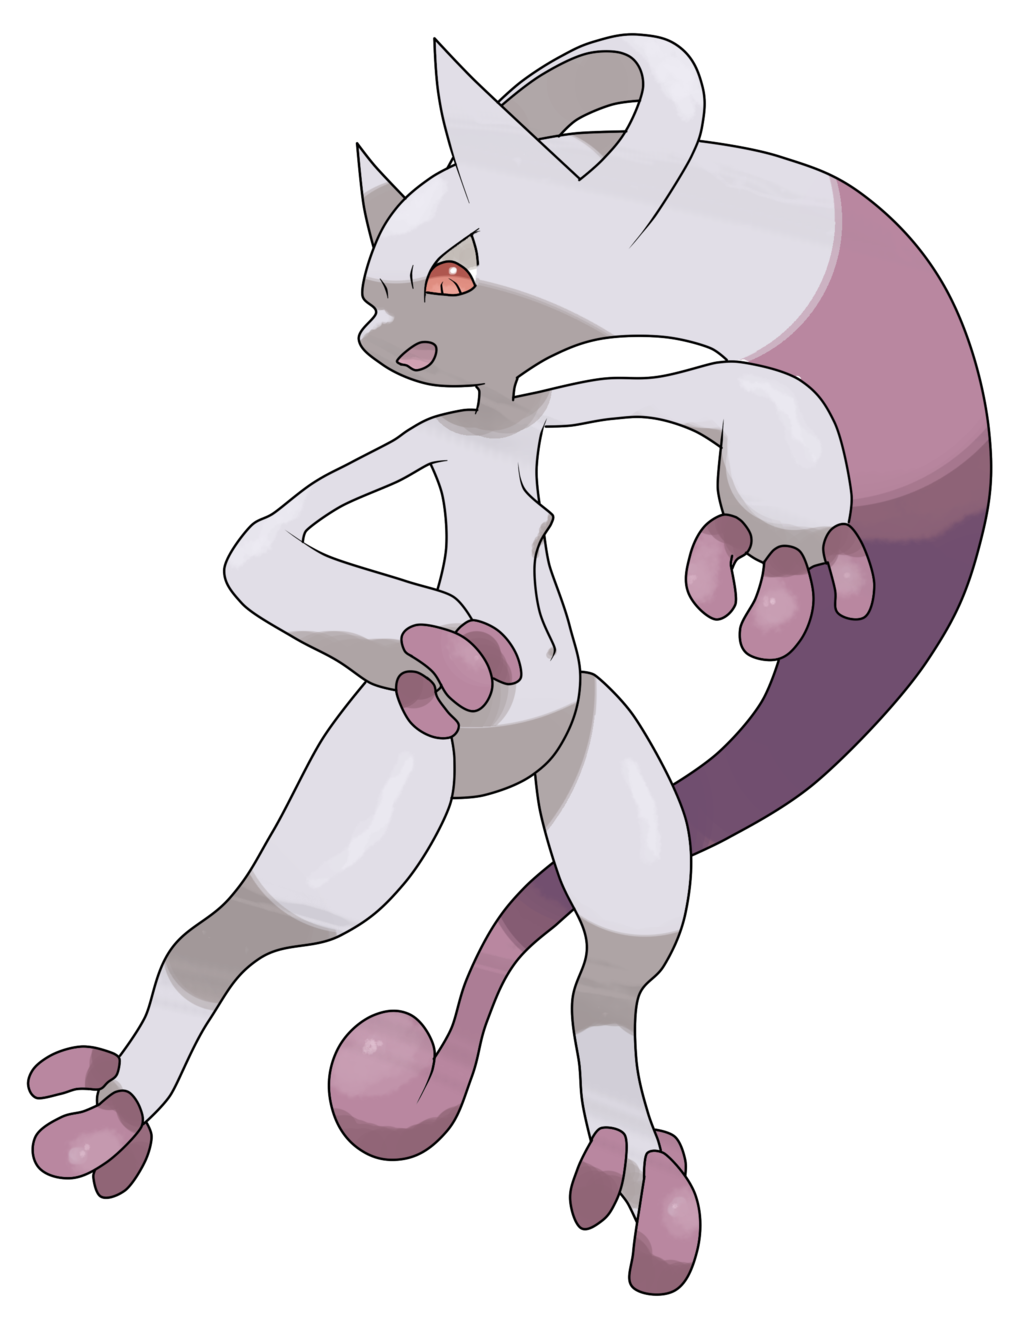 Mega mewtwo y png. By theangryaron deviantart com